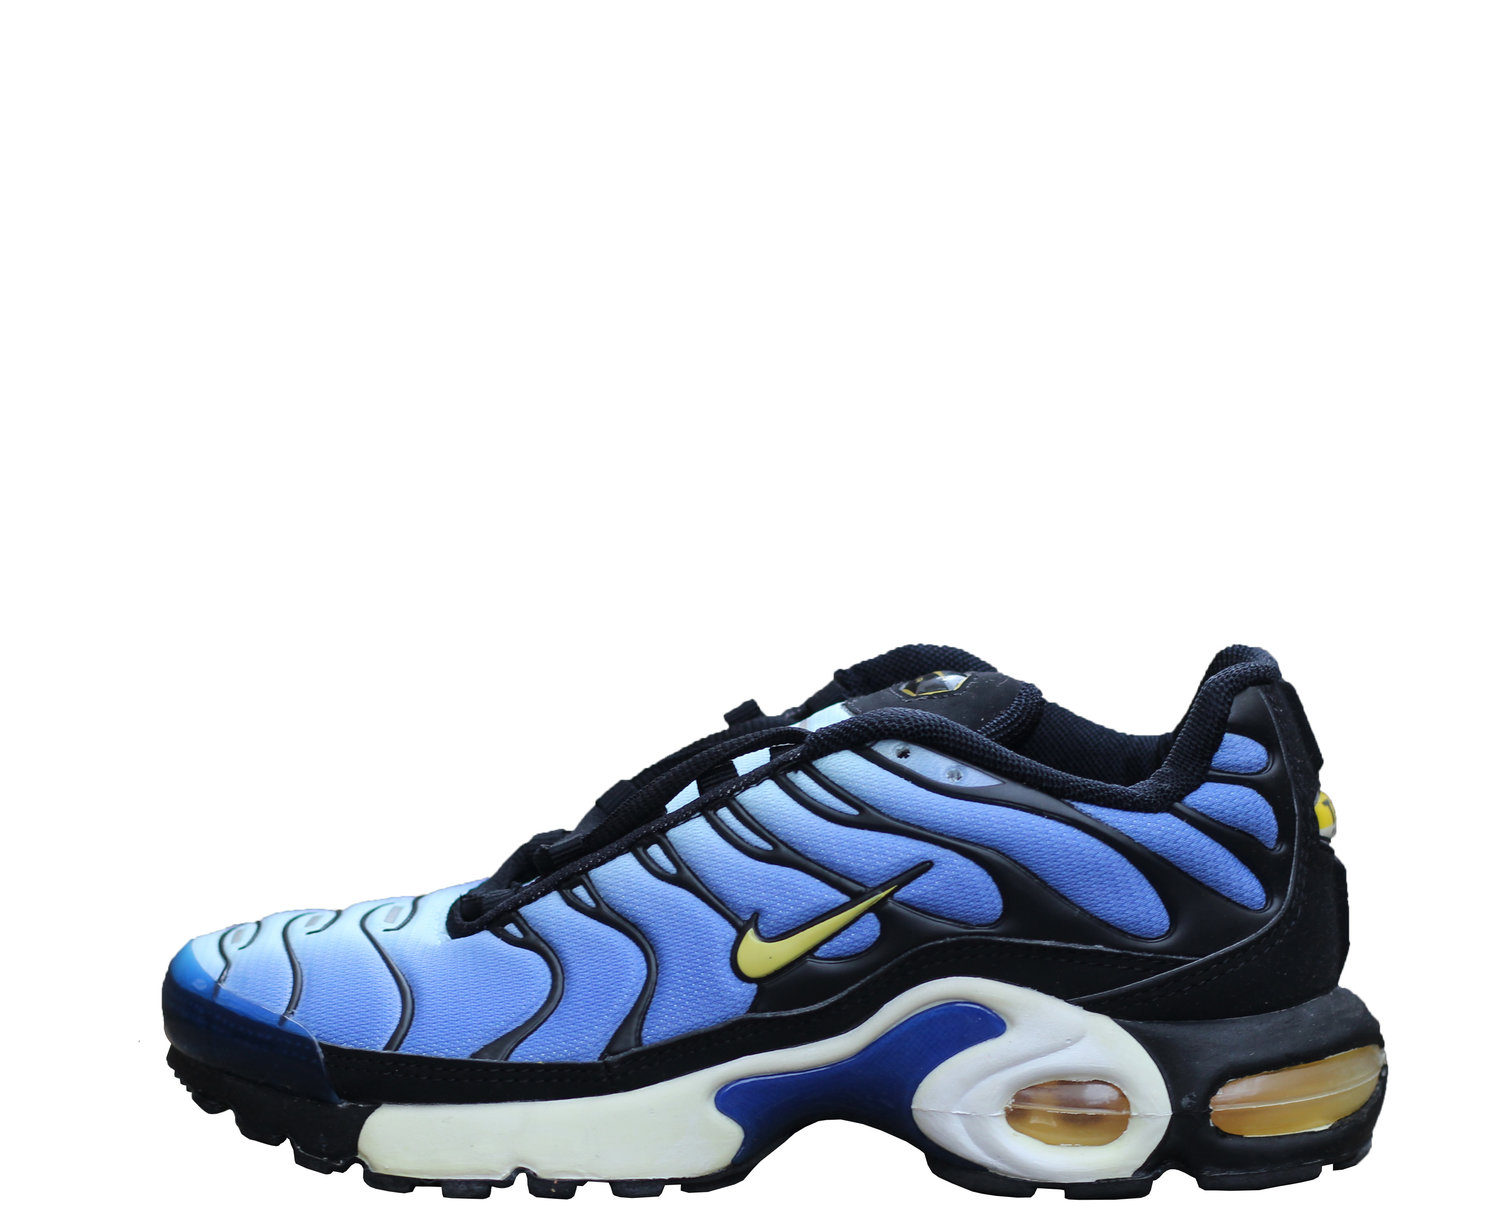 finest selection f34ca d4cf0 Kids Nike Air Max Plus TN Hyper Blue DS 2003 — Roots